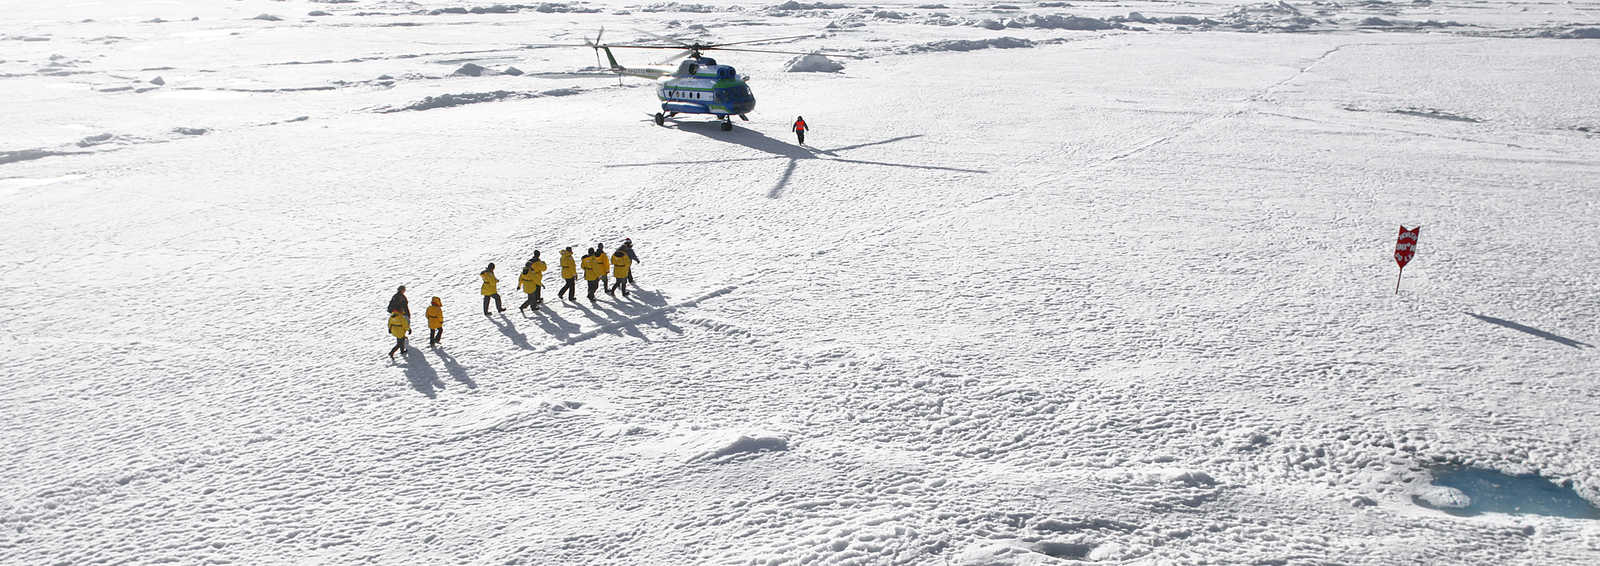 Helicopter and clients at North Pole